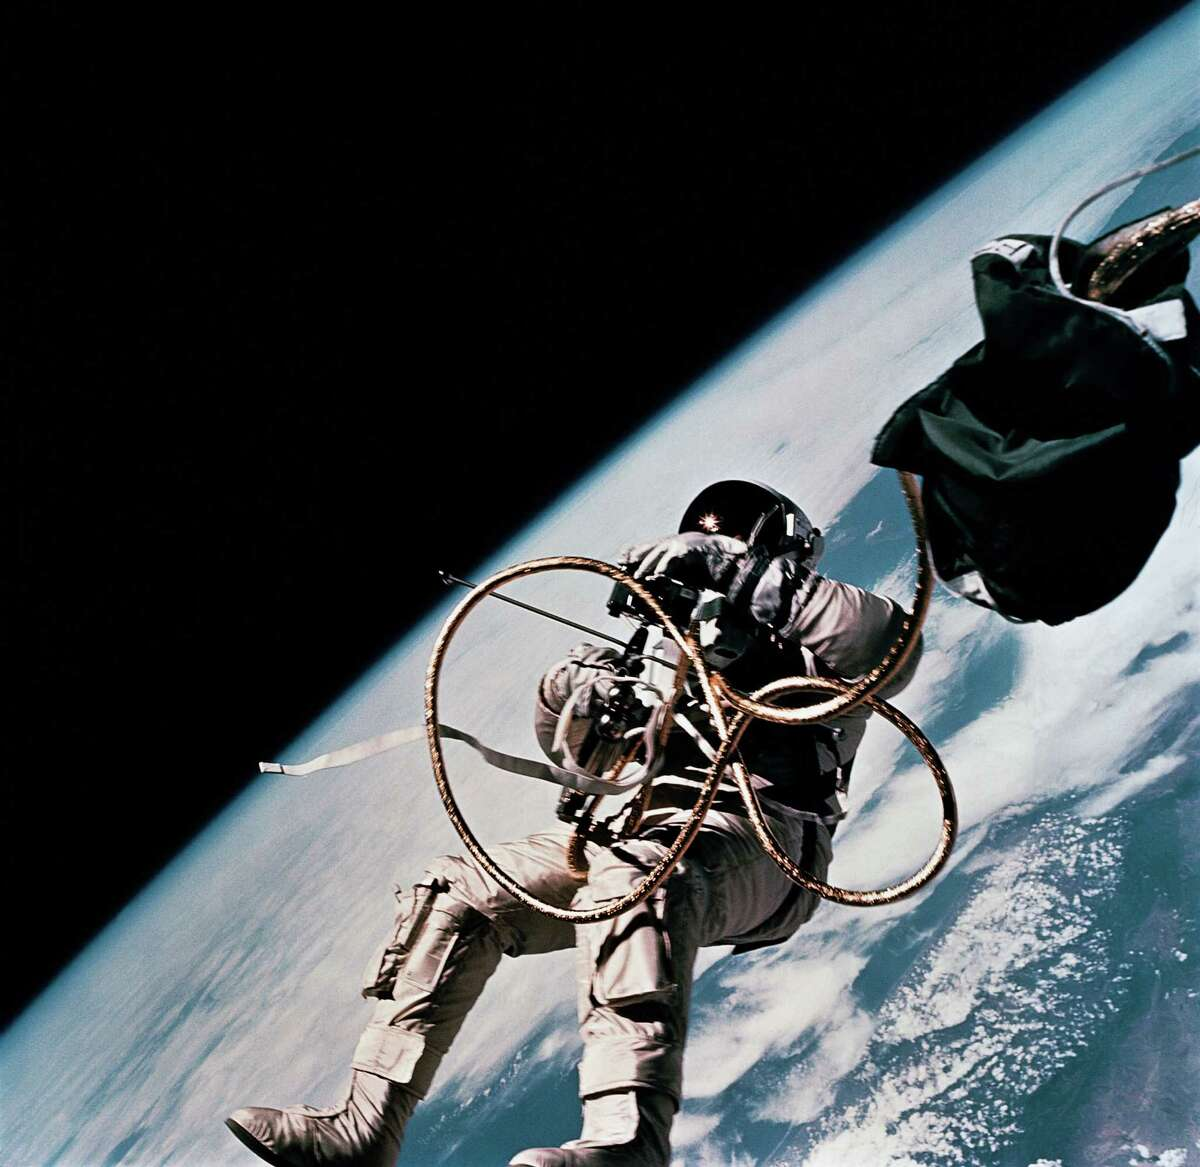 Astronaut Ed White, pilot for the Gemini-Titan 4 spaceflight, floats in space June 3, 1965. The San Antonian was the first American to walk in space.